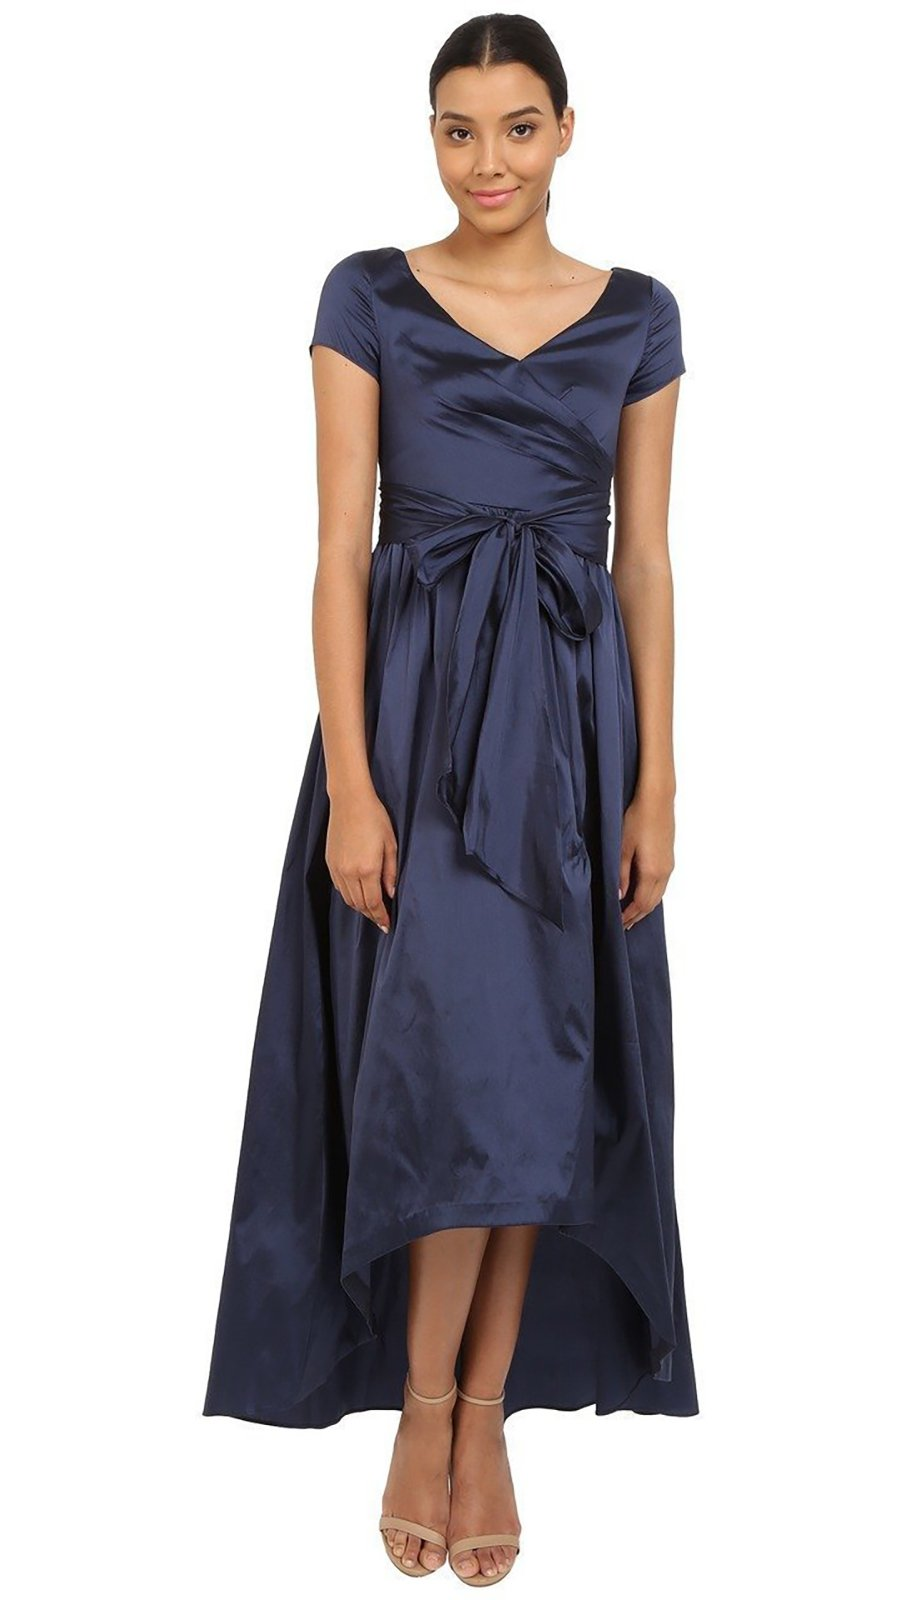 Adrianna Papell - 81917430SC Short Sleeve Wrap Taffeta A-Line Dress